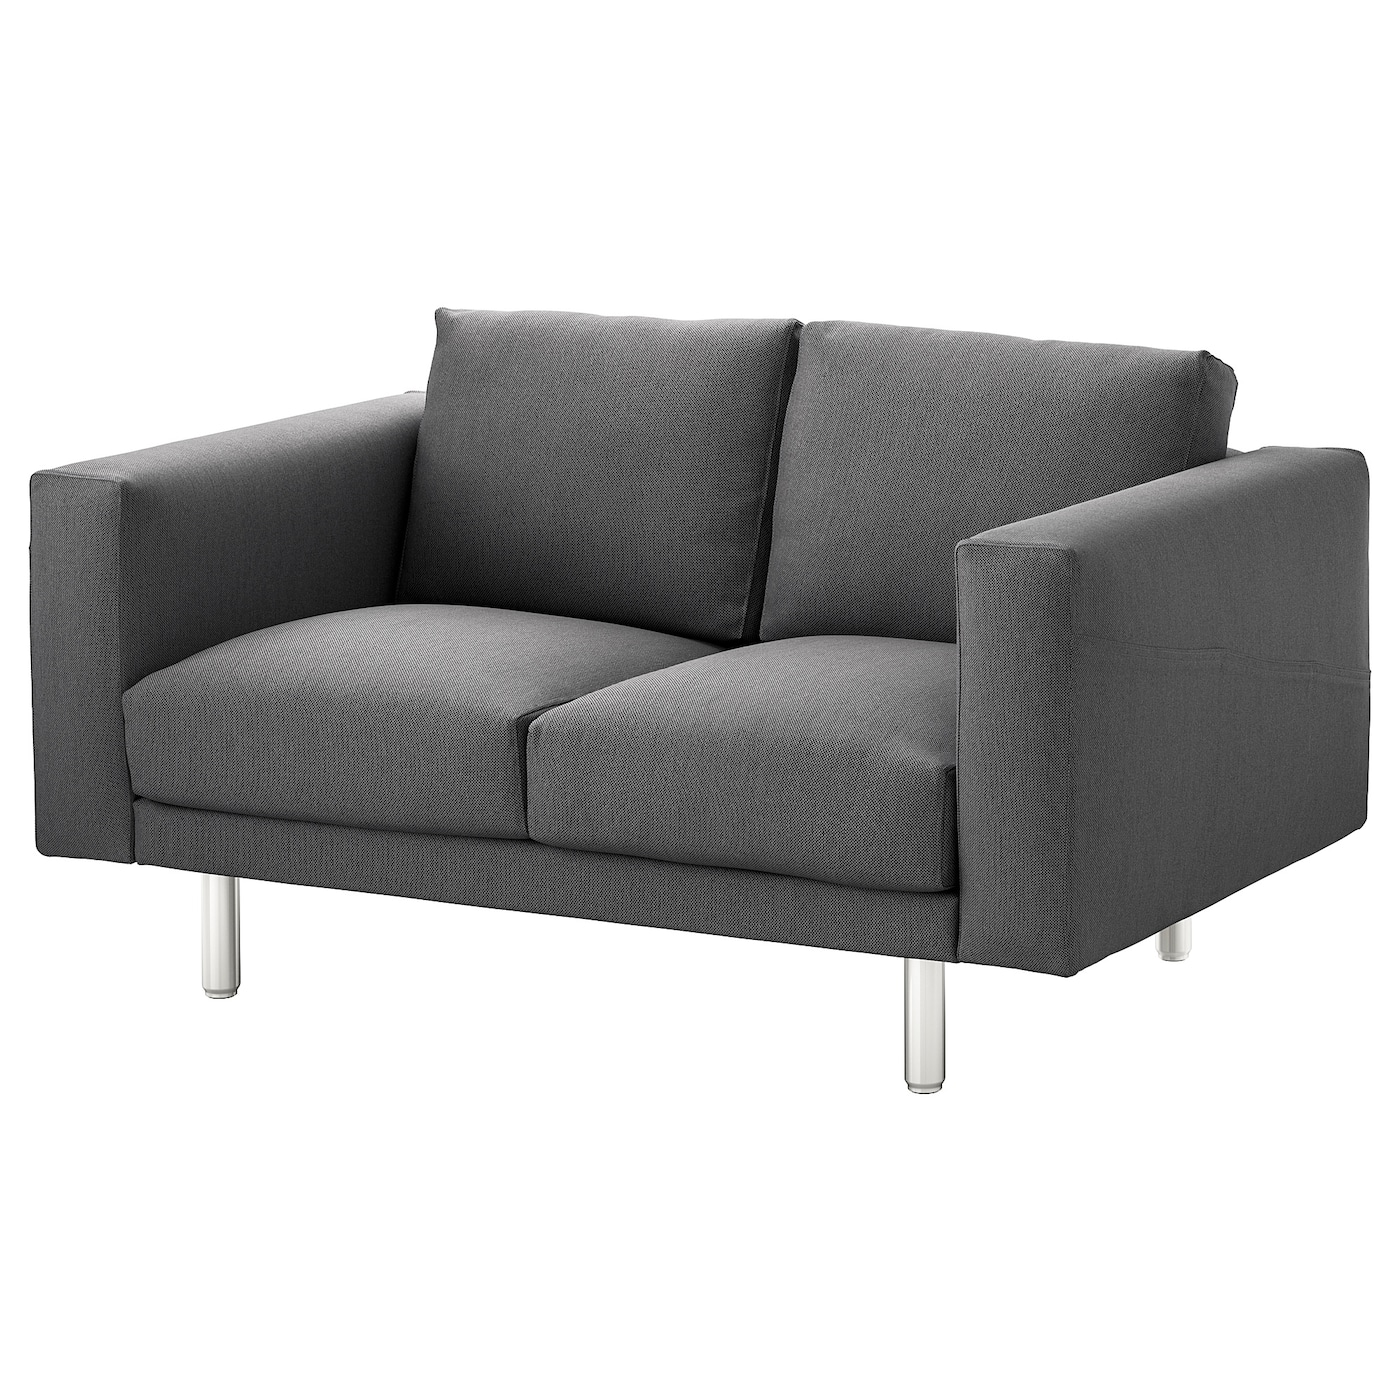 ikea sofa grau ikea kivik sofa grau 2017 07 25 19 08 47. Black Bedroom Furniture Sets. Home Design Ideas